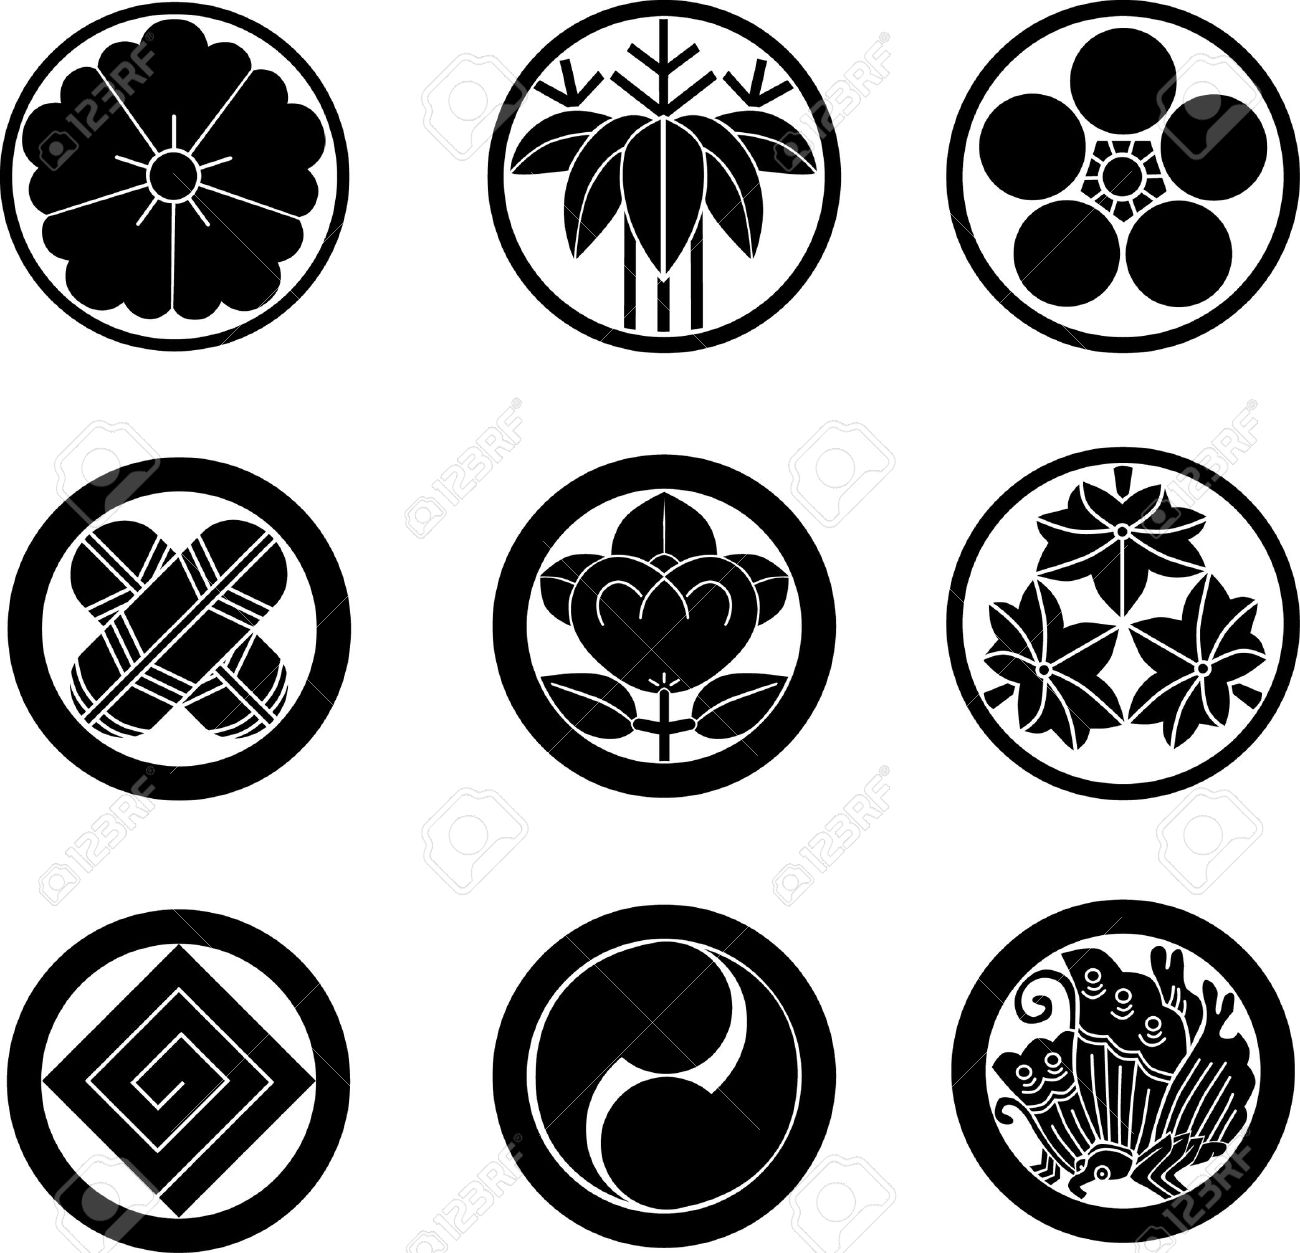 Japanese Family Crests - 8817989